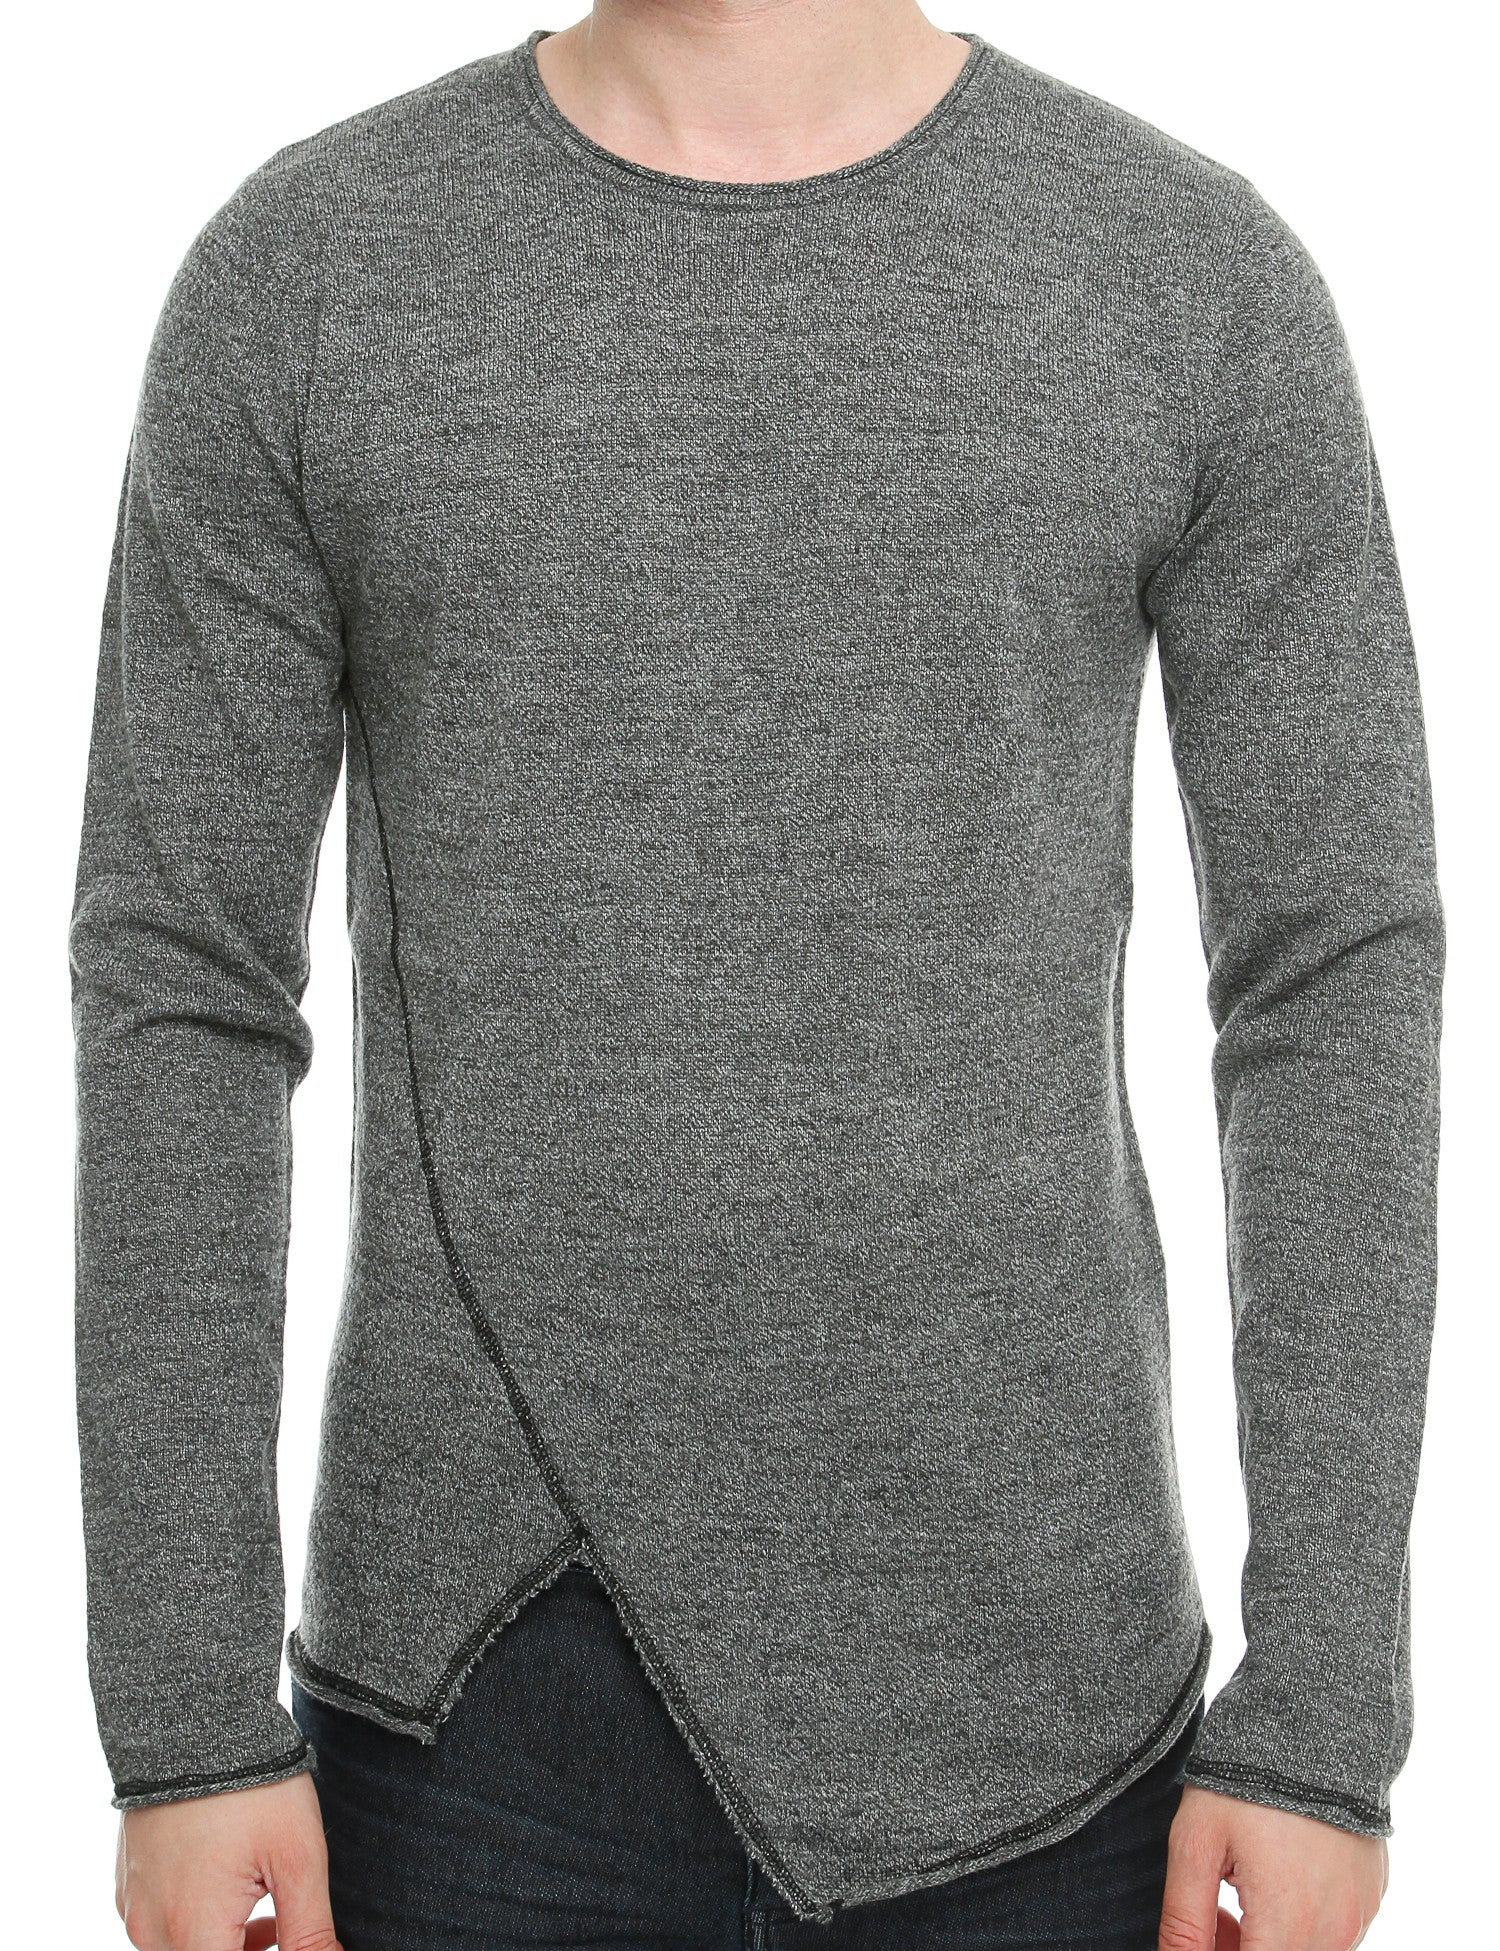 Solid Knit-Erly Crewneck 6162734 Dark Grey